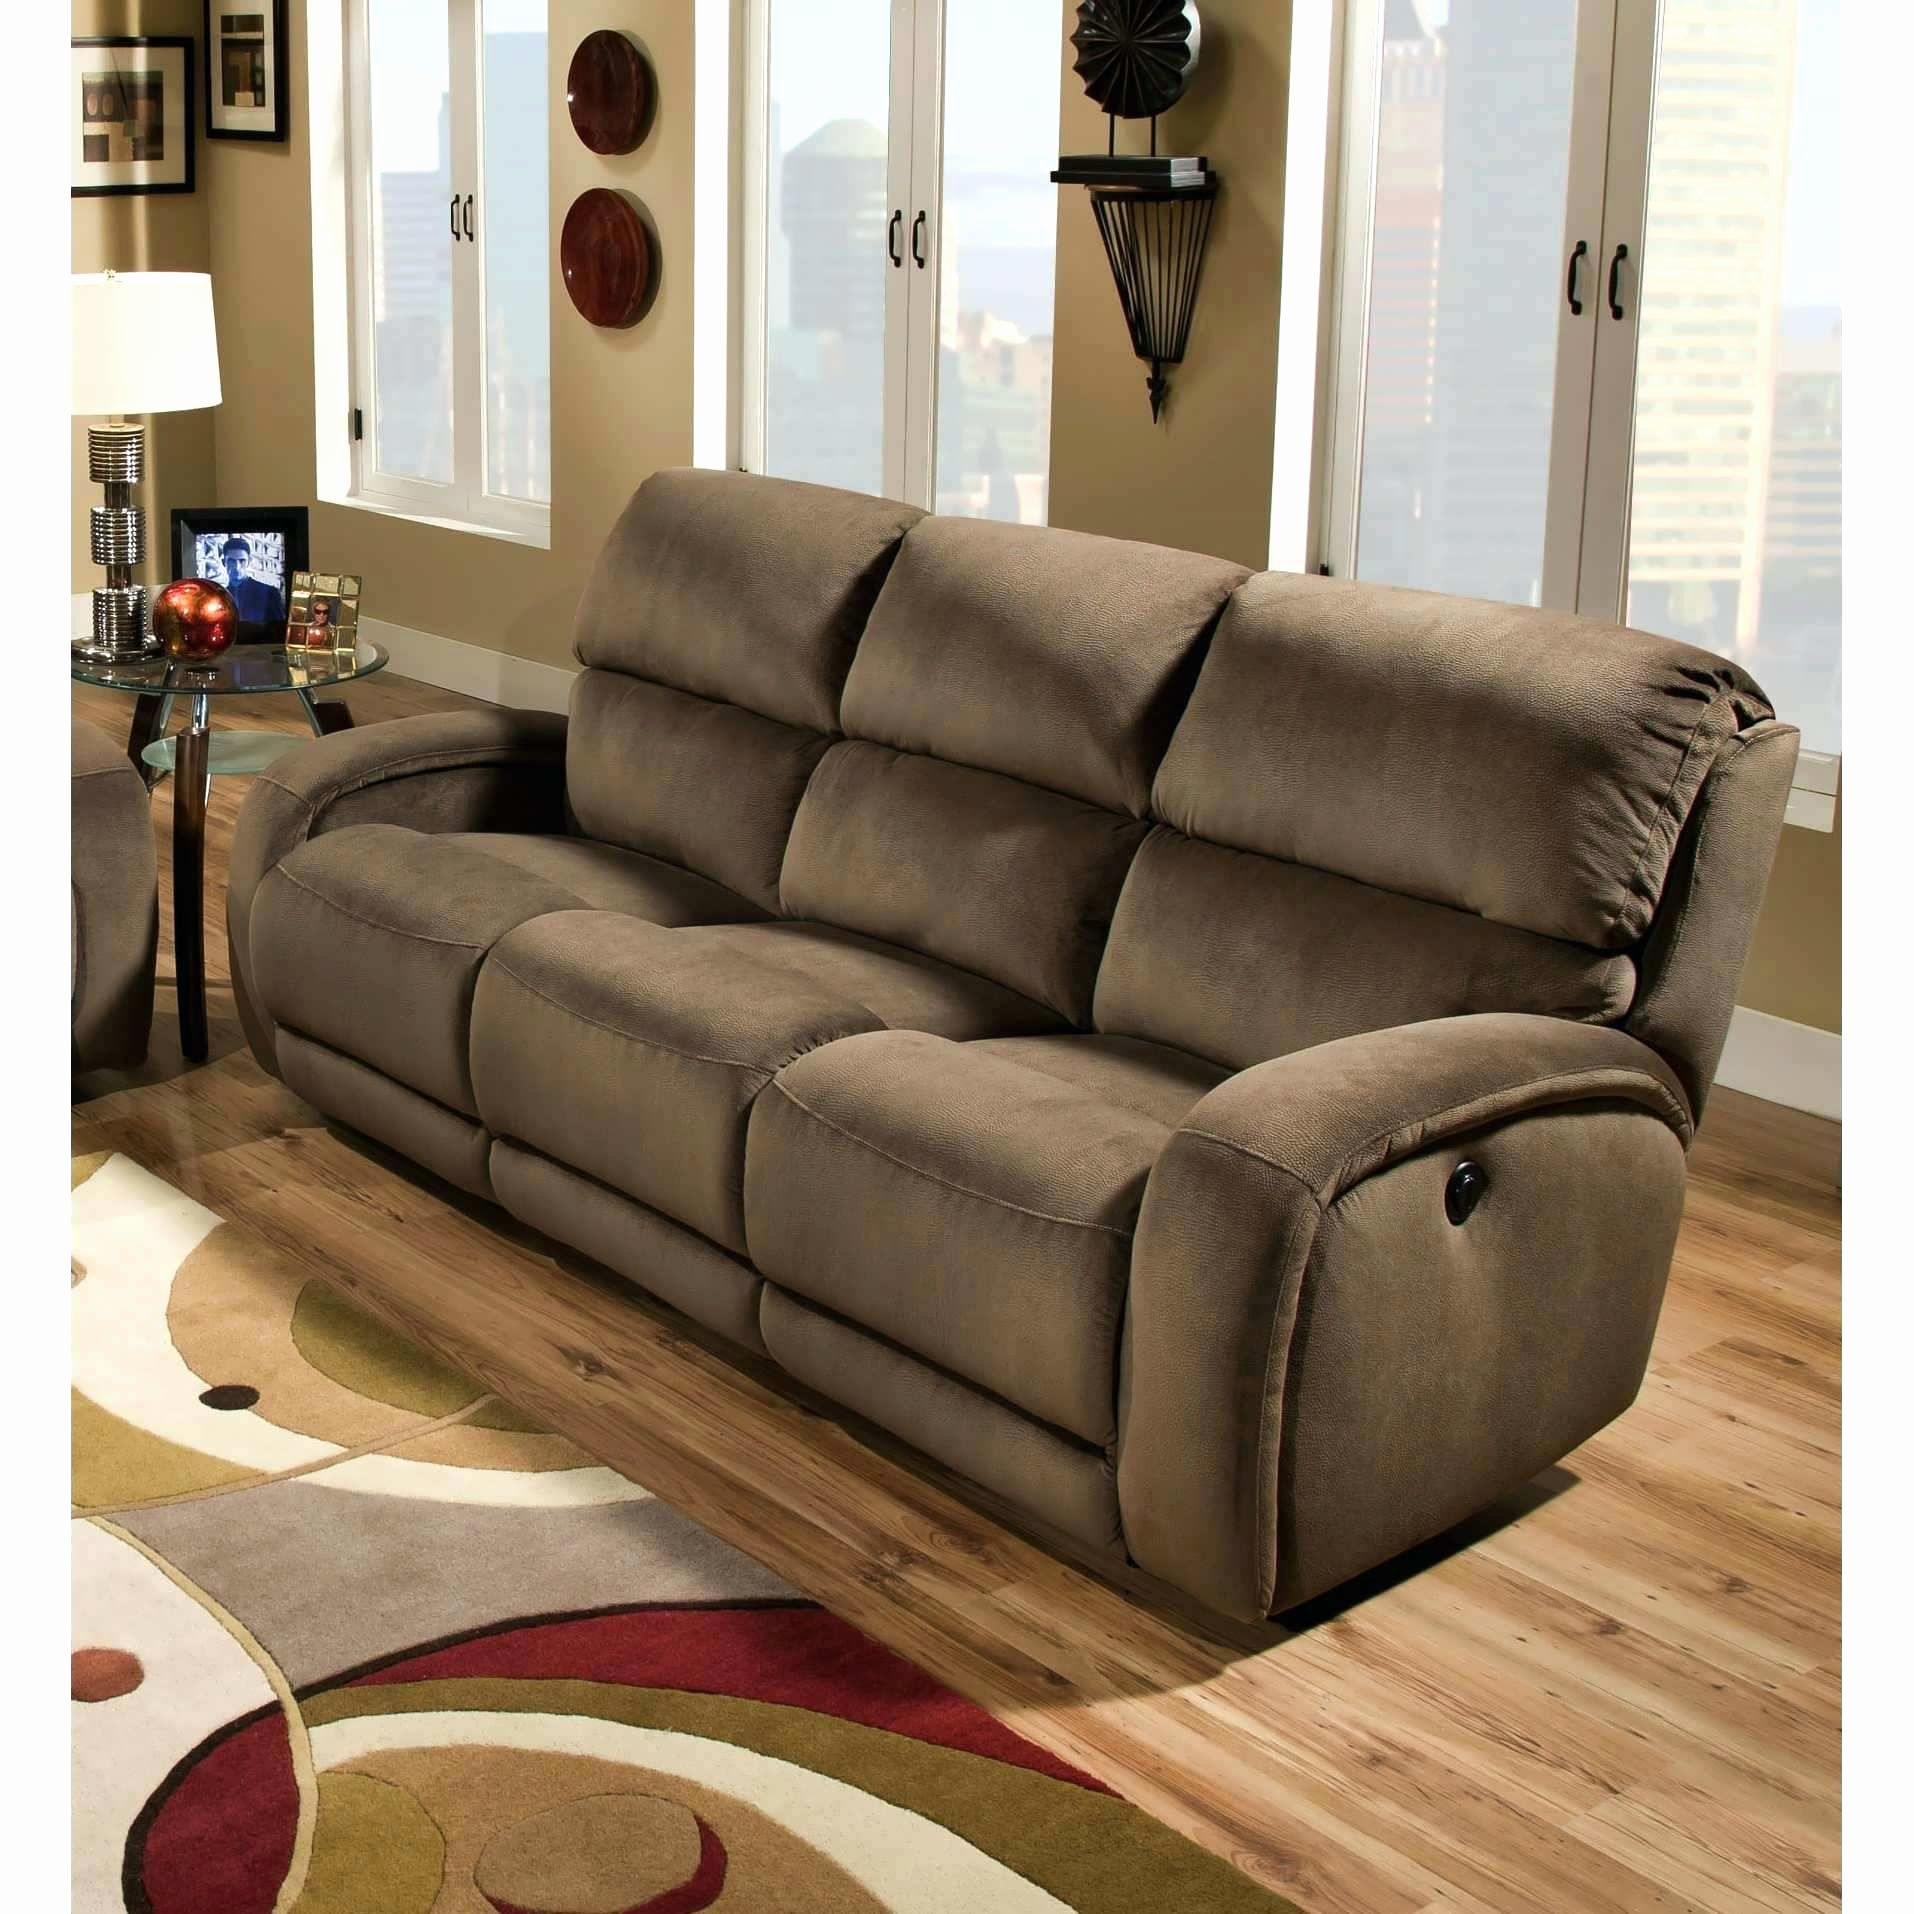 Awesome Serta Sectional Sofa Pics Serta Sectional Sofa Beautiful Sectional Sofa Bed Loveseat With Chaise Small G Romano William Reclining Sofa Sofa Furniture #serta #living #room #furniture